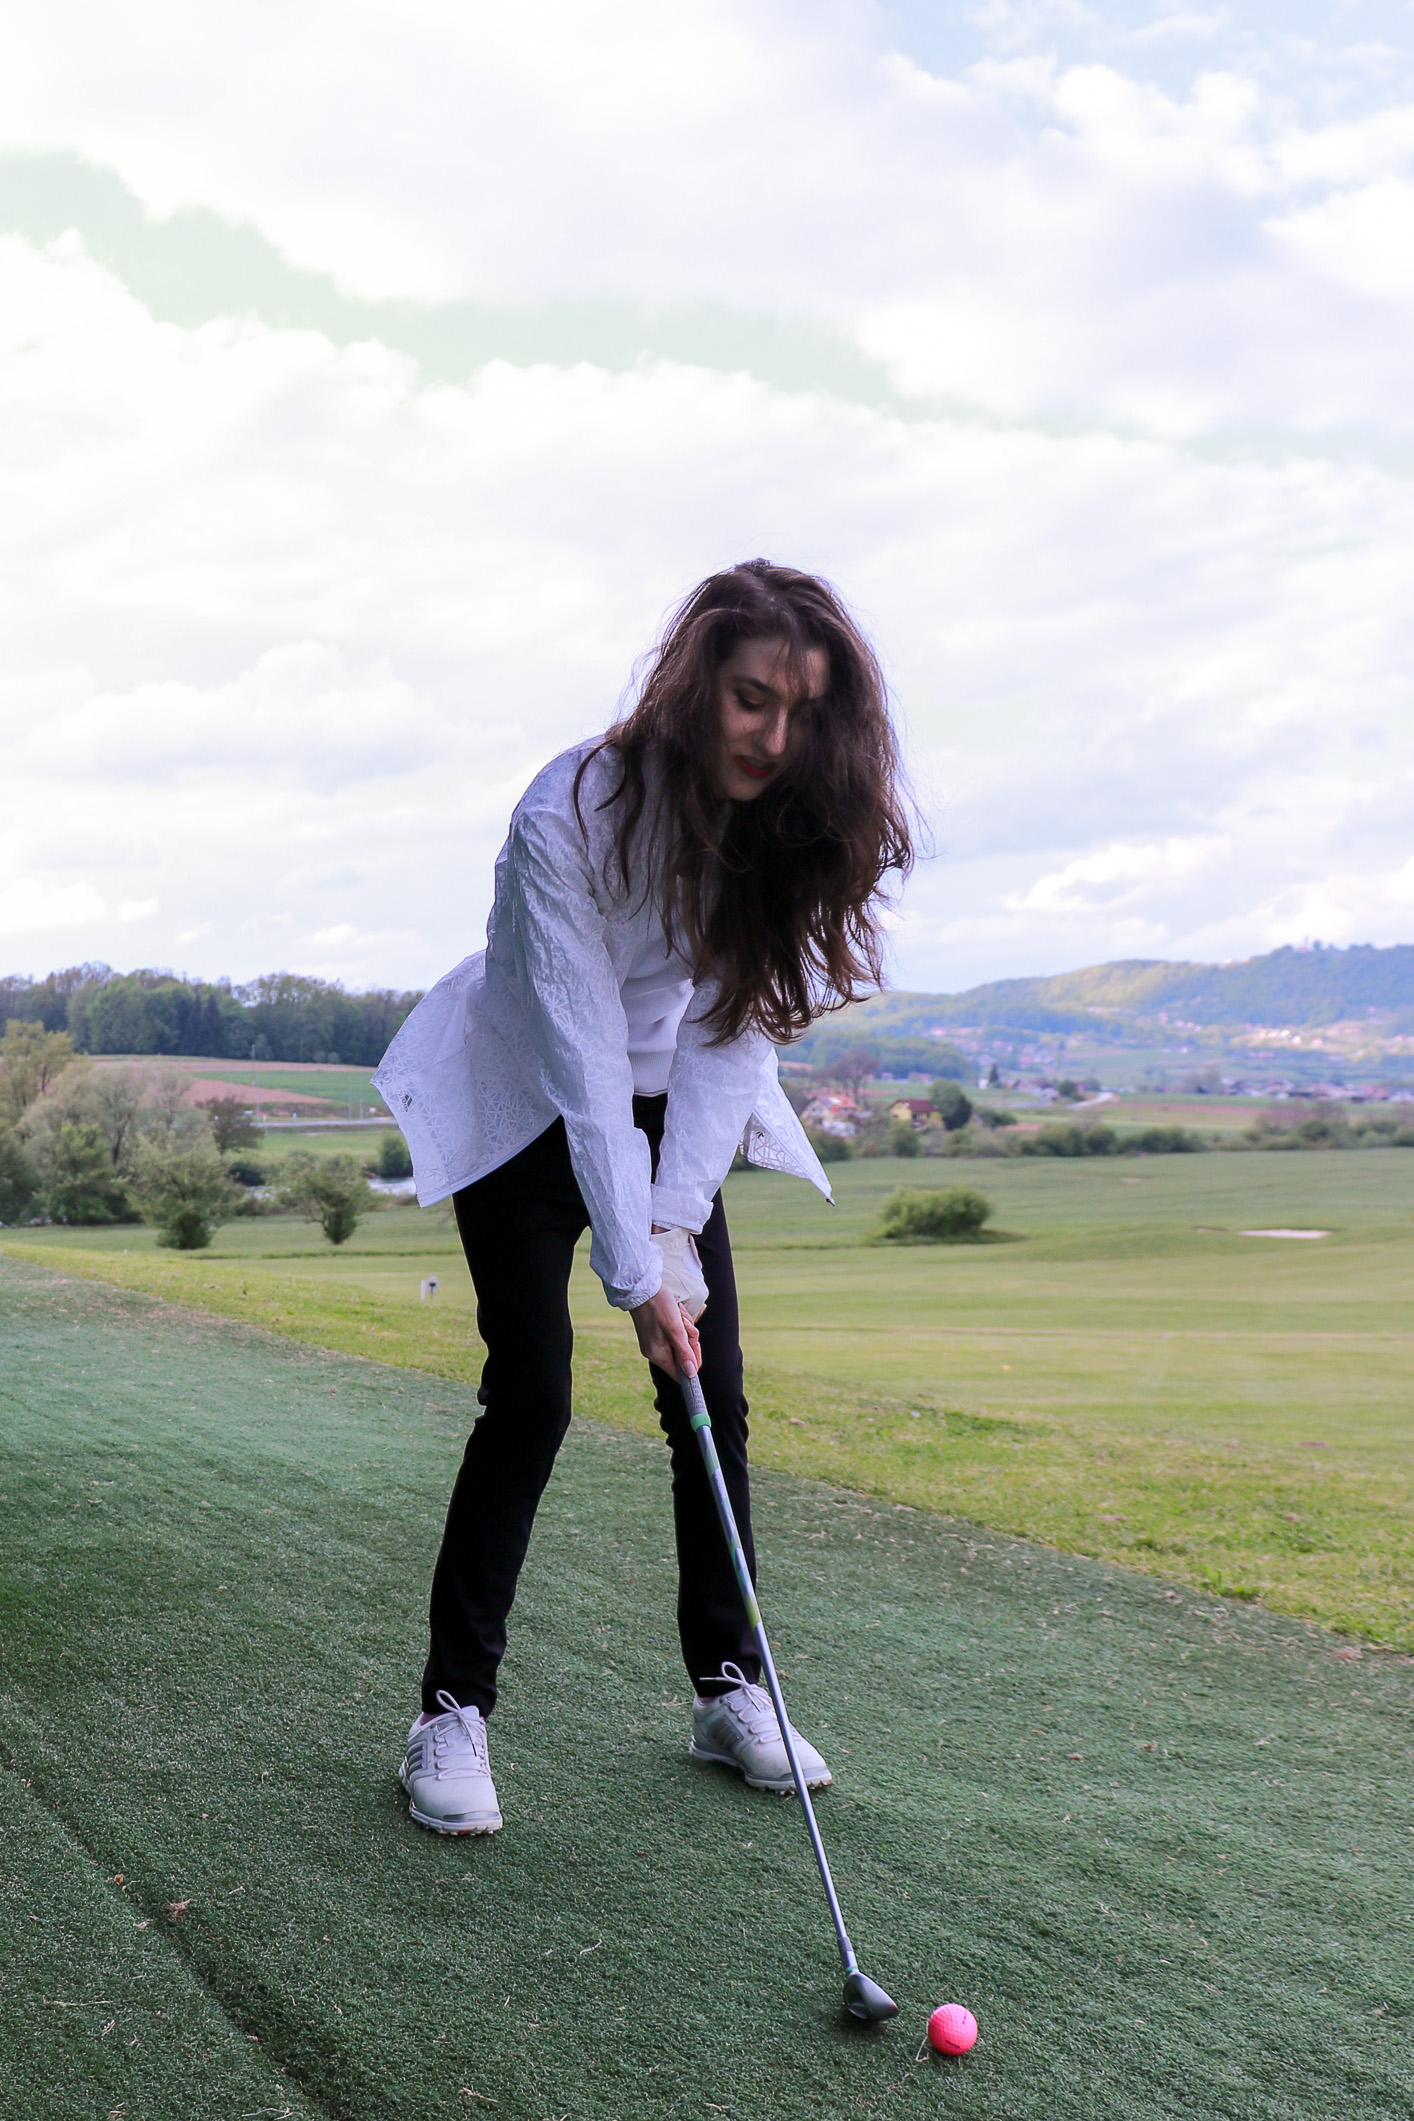 Fashion blogger Veronika Lipar of Brunette From Wall Street sharing how to swing in style on the golf course this year